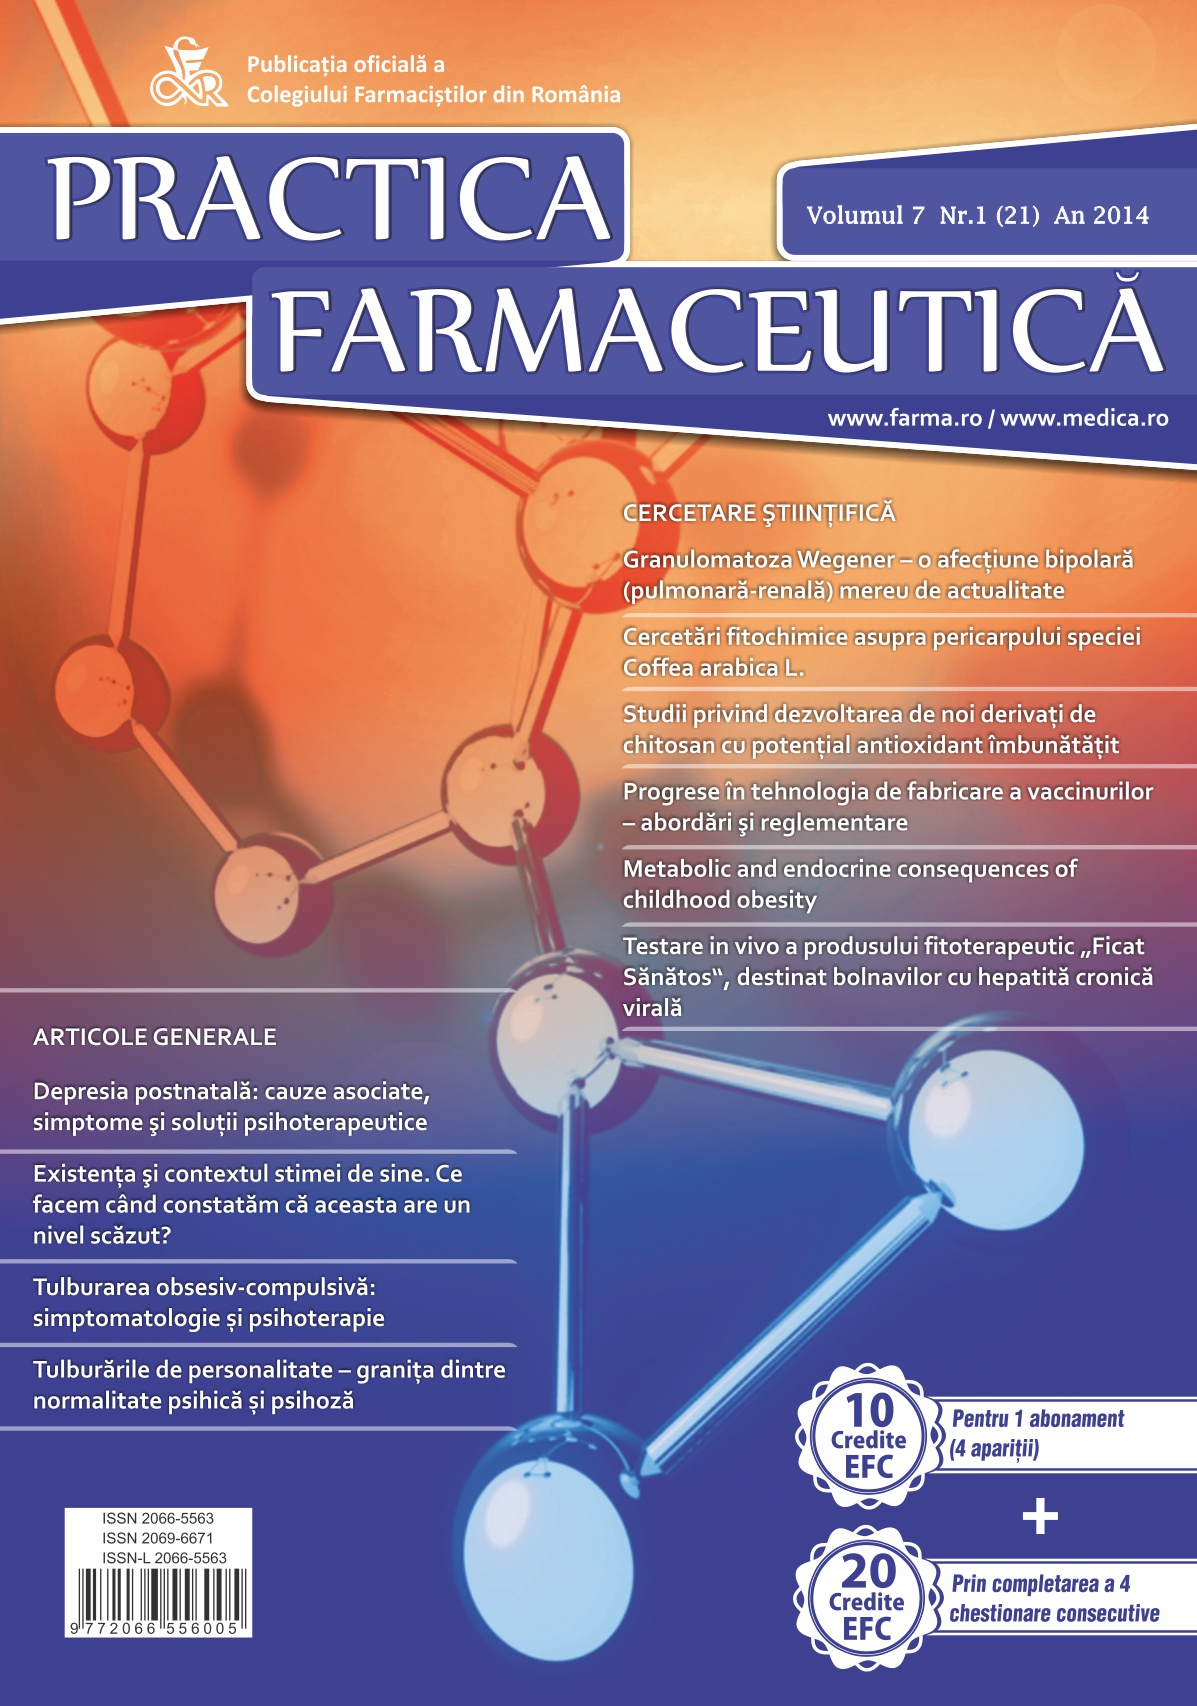 Revista Practica Farmaceutica, Vol. VII, No. 1 (21), 2014